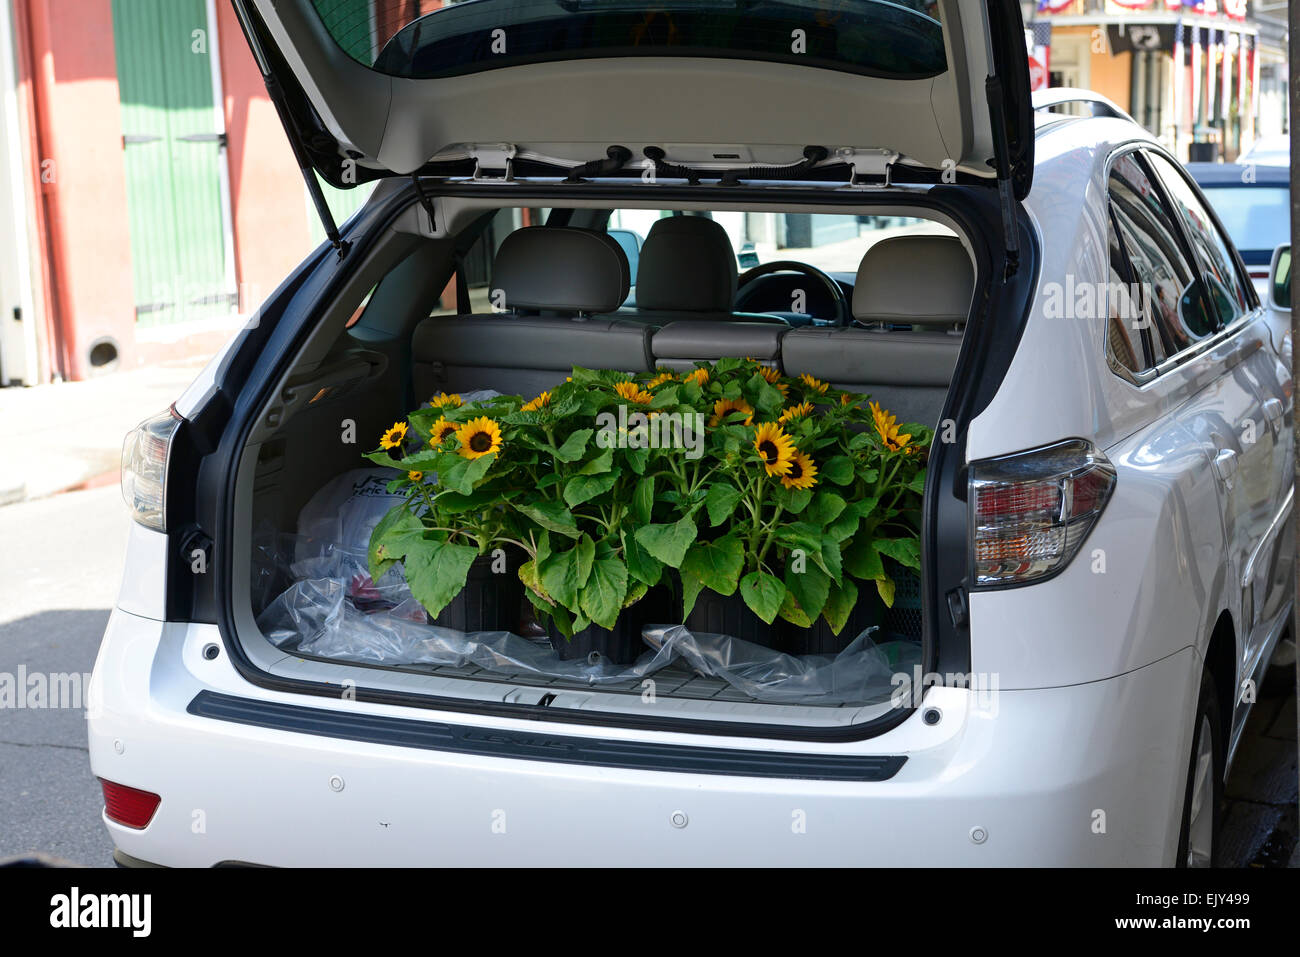 sunflowers flowers yellow flower deliver delivery trunk boot car garden gardening supply supplies RM Floral - Stock Image